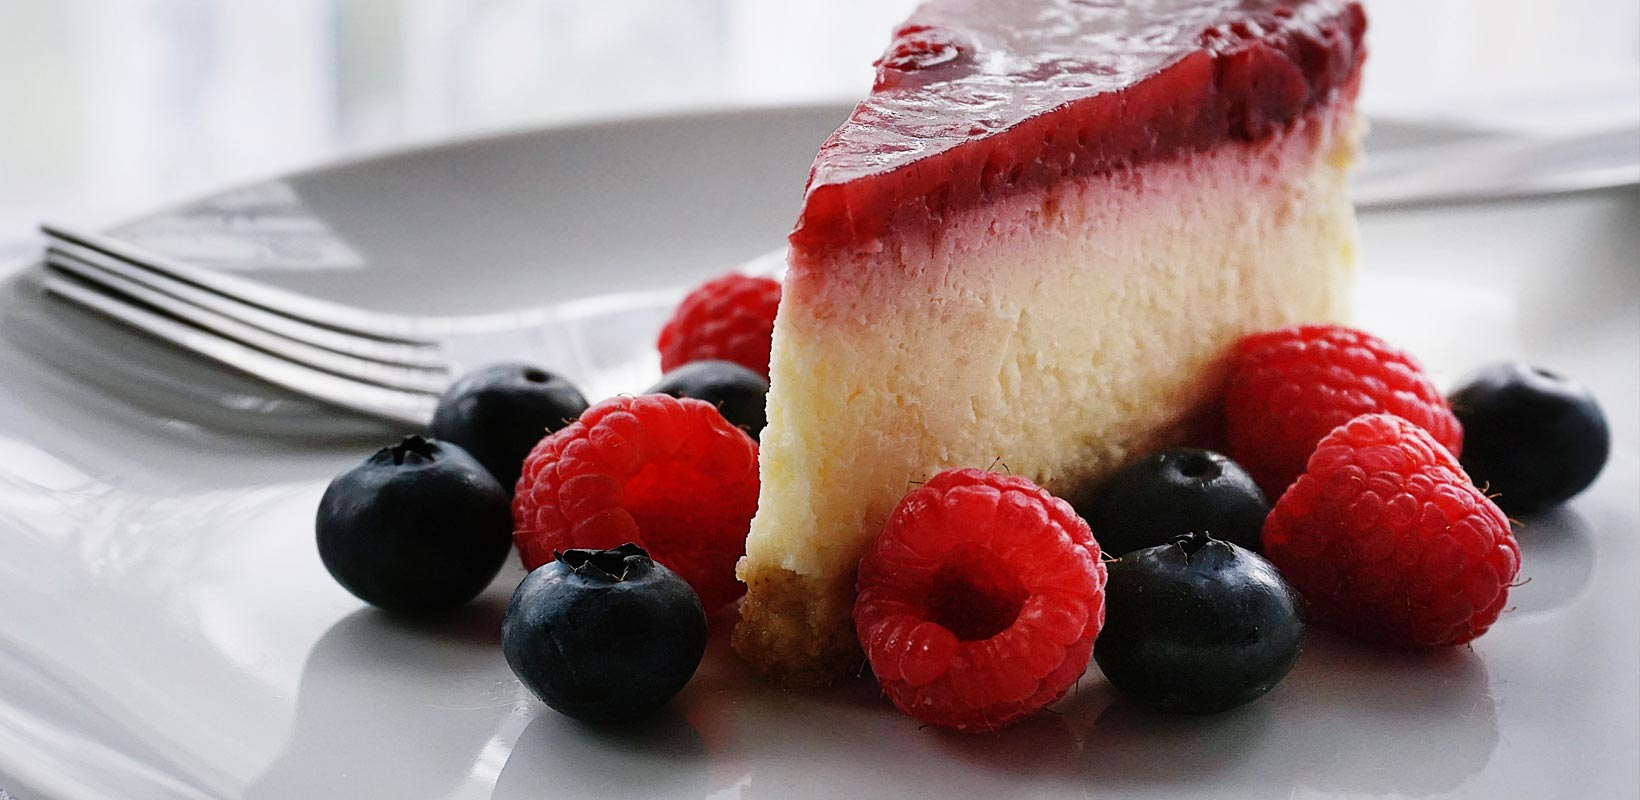 Dreamy Desserts: At Home